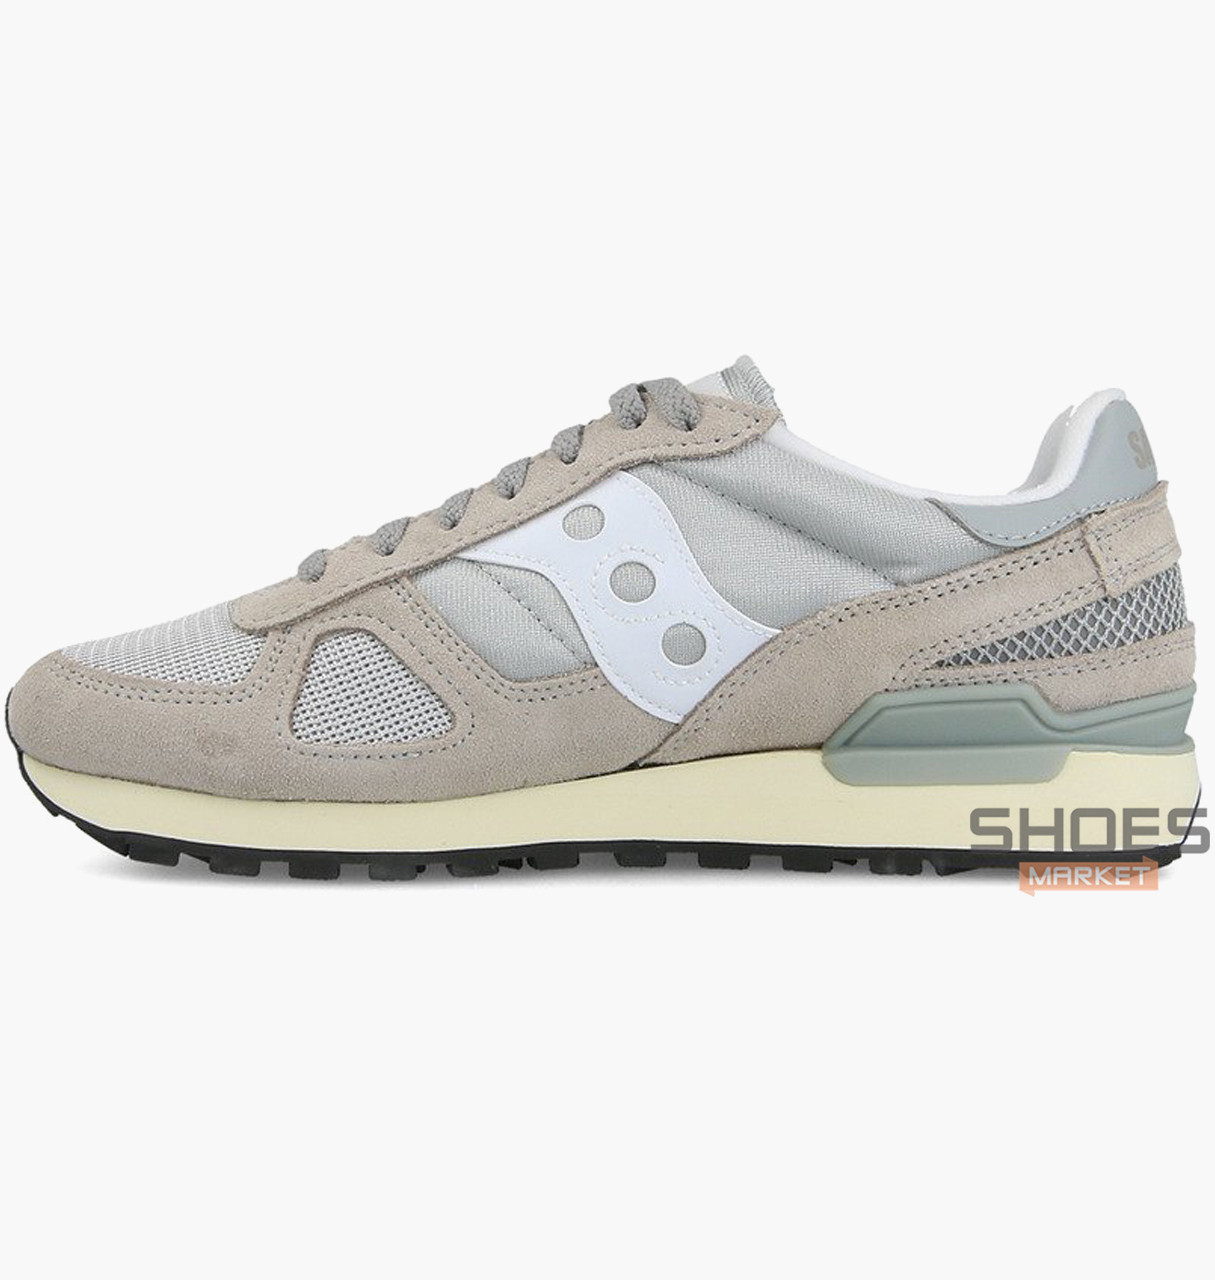 Мужские кроссовки Saucony Shadow Original Vintage S70424-1, оригинал